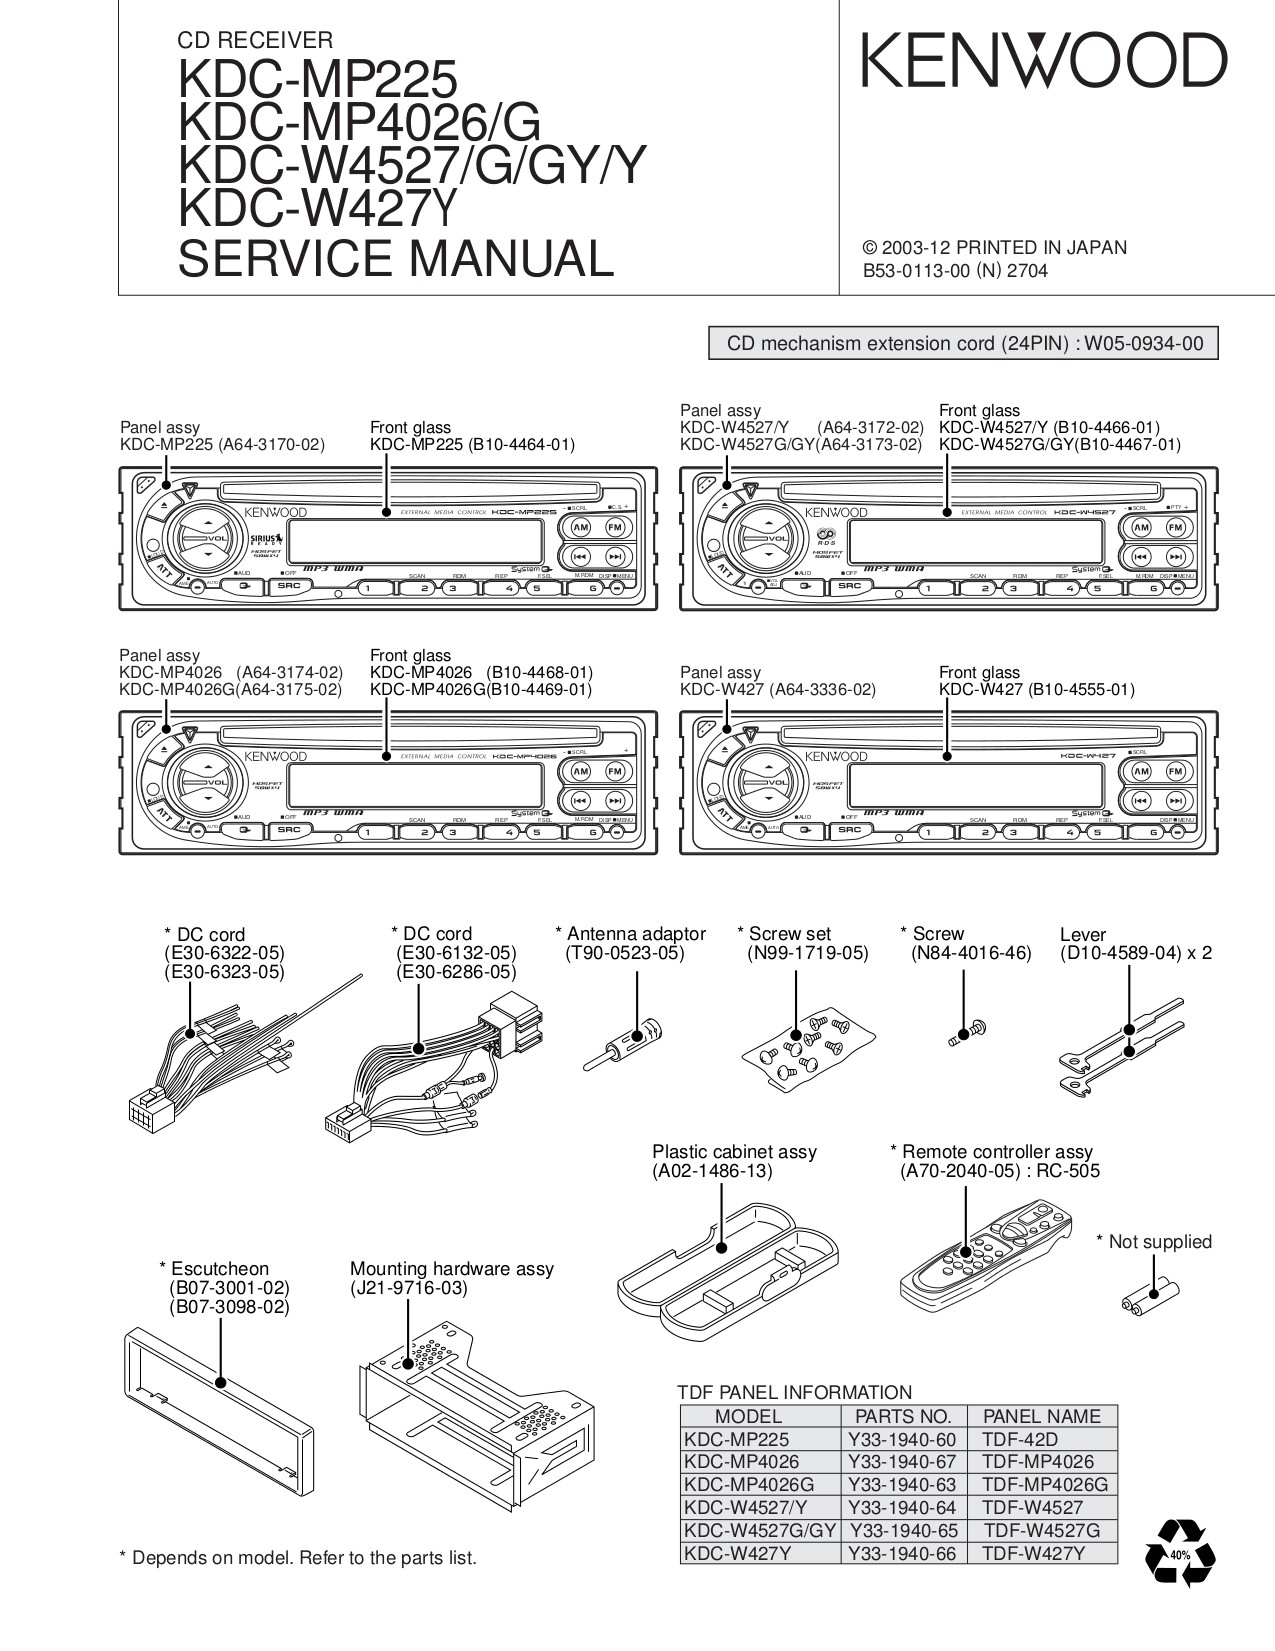 Amazing Kdc 148 Wiring Diagram Festooning - Electrical and Wiring ...